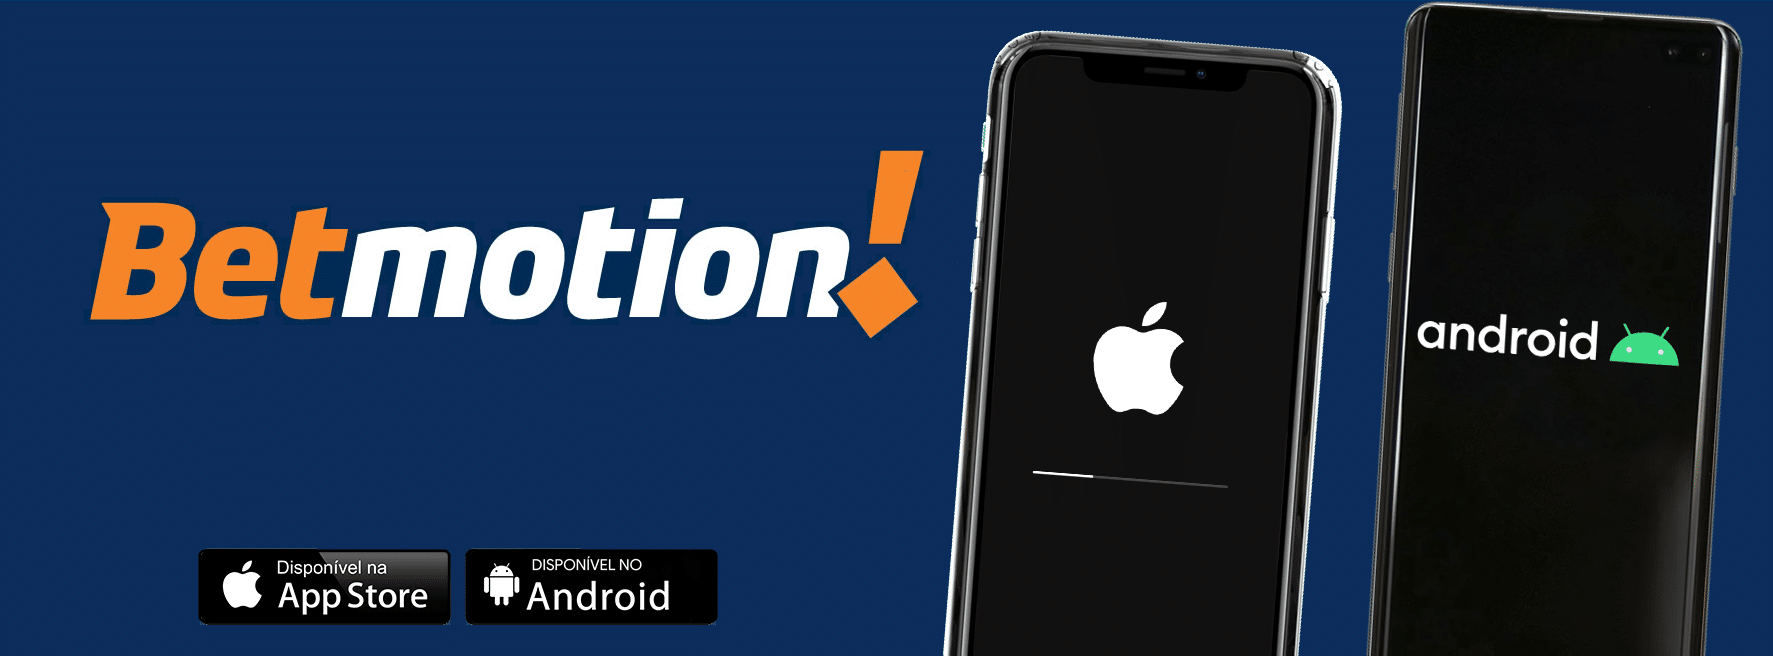 Betmotion mobile 362062